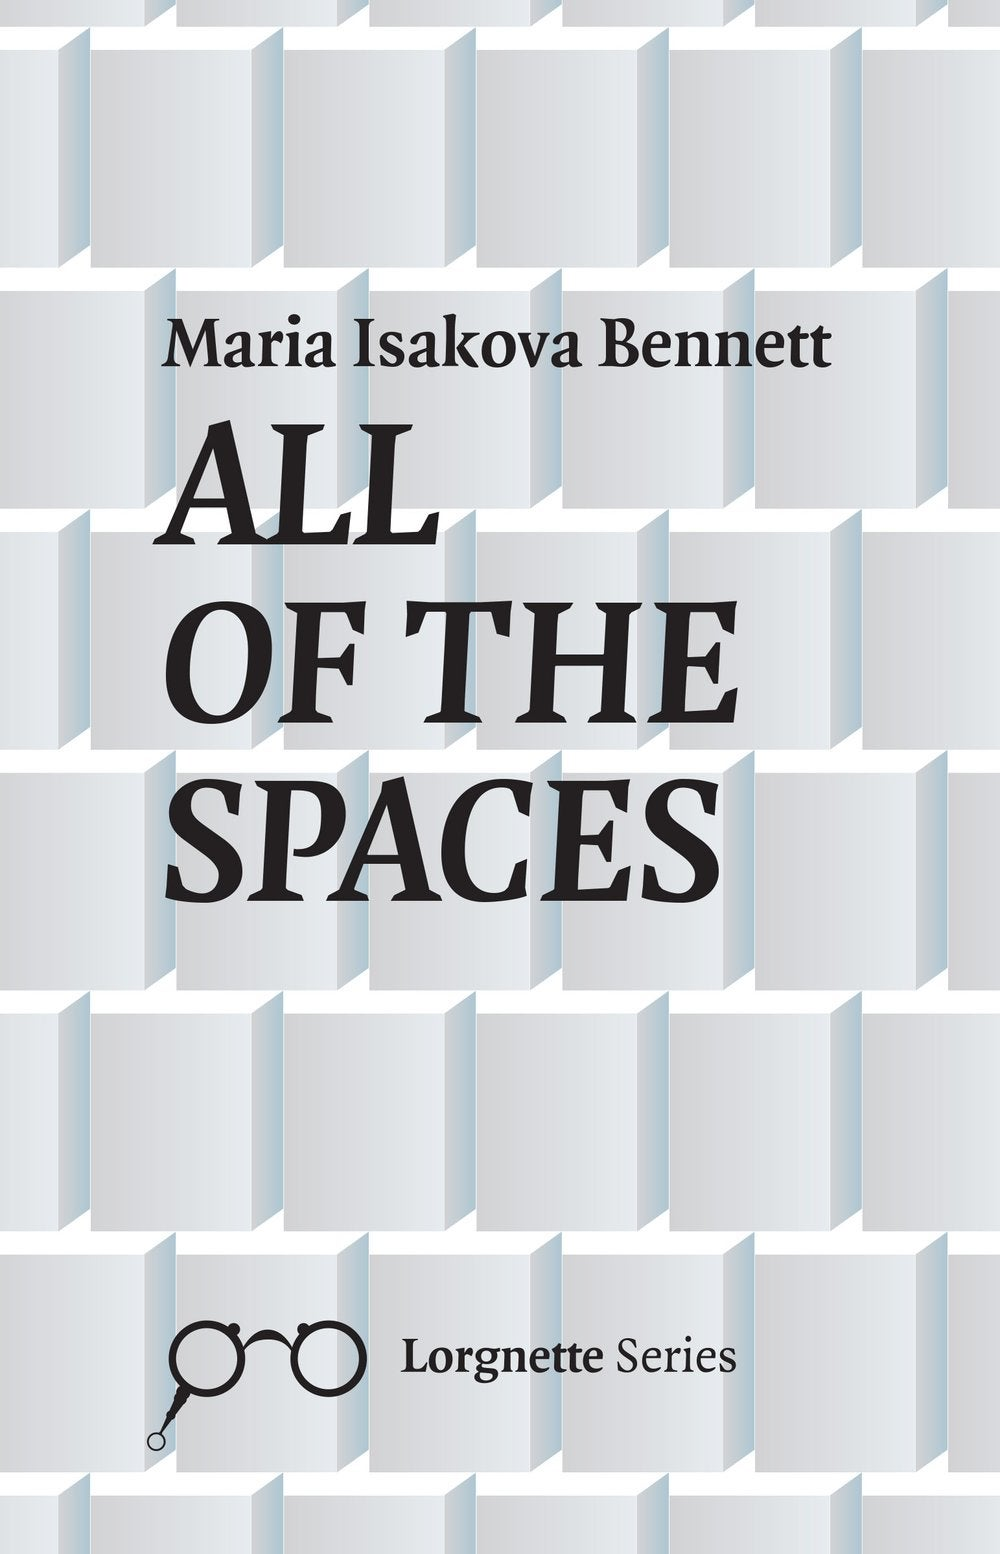 Image of All of the Spaces